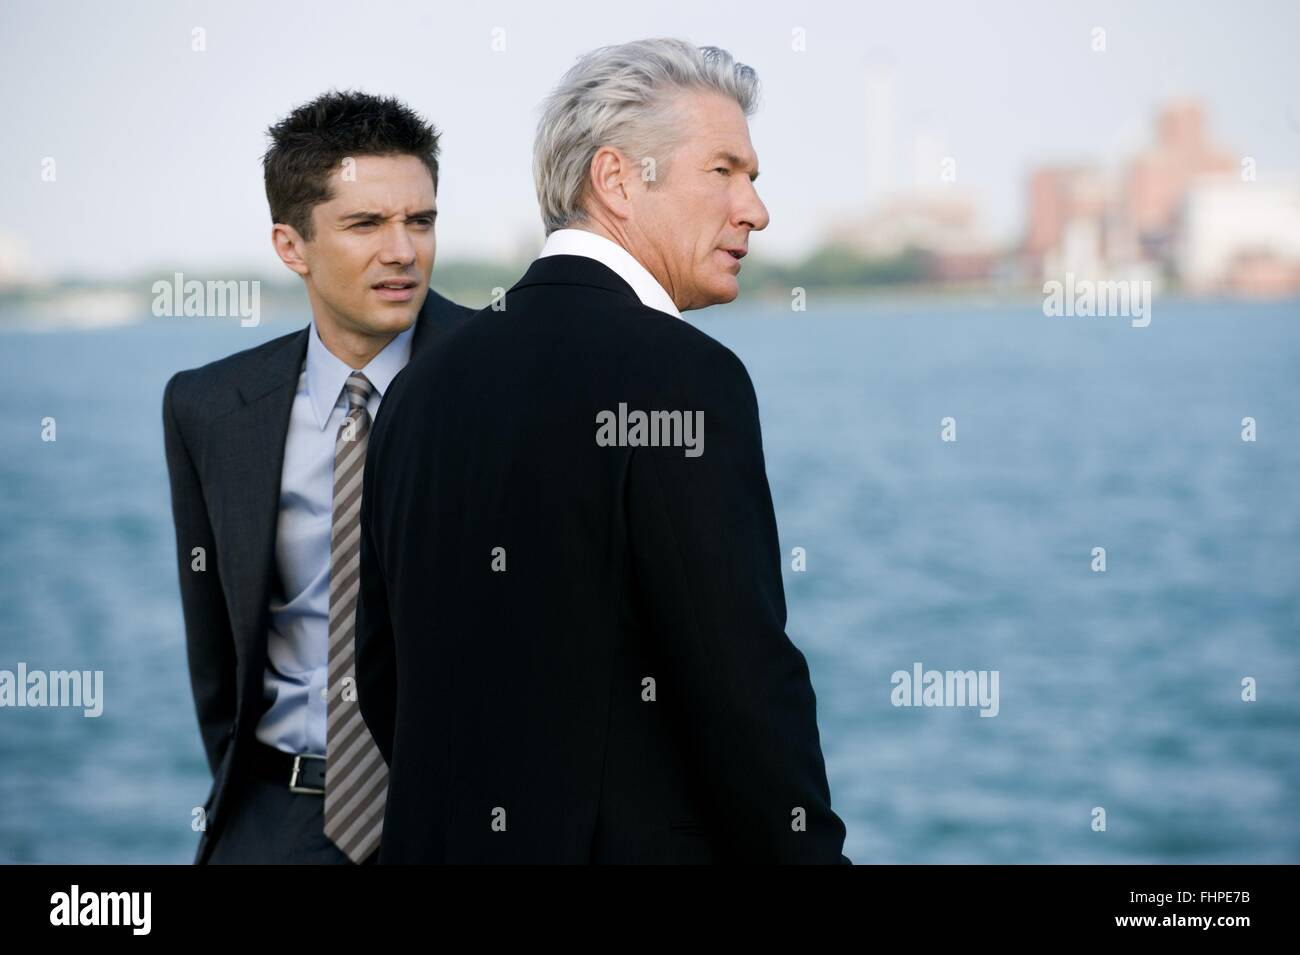 TOPHER GRACE & RICHARD GERE THE DOUBLE (2011) - Stock Image